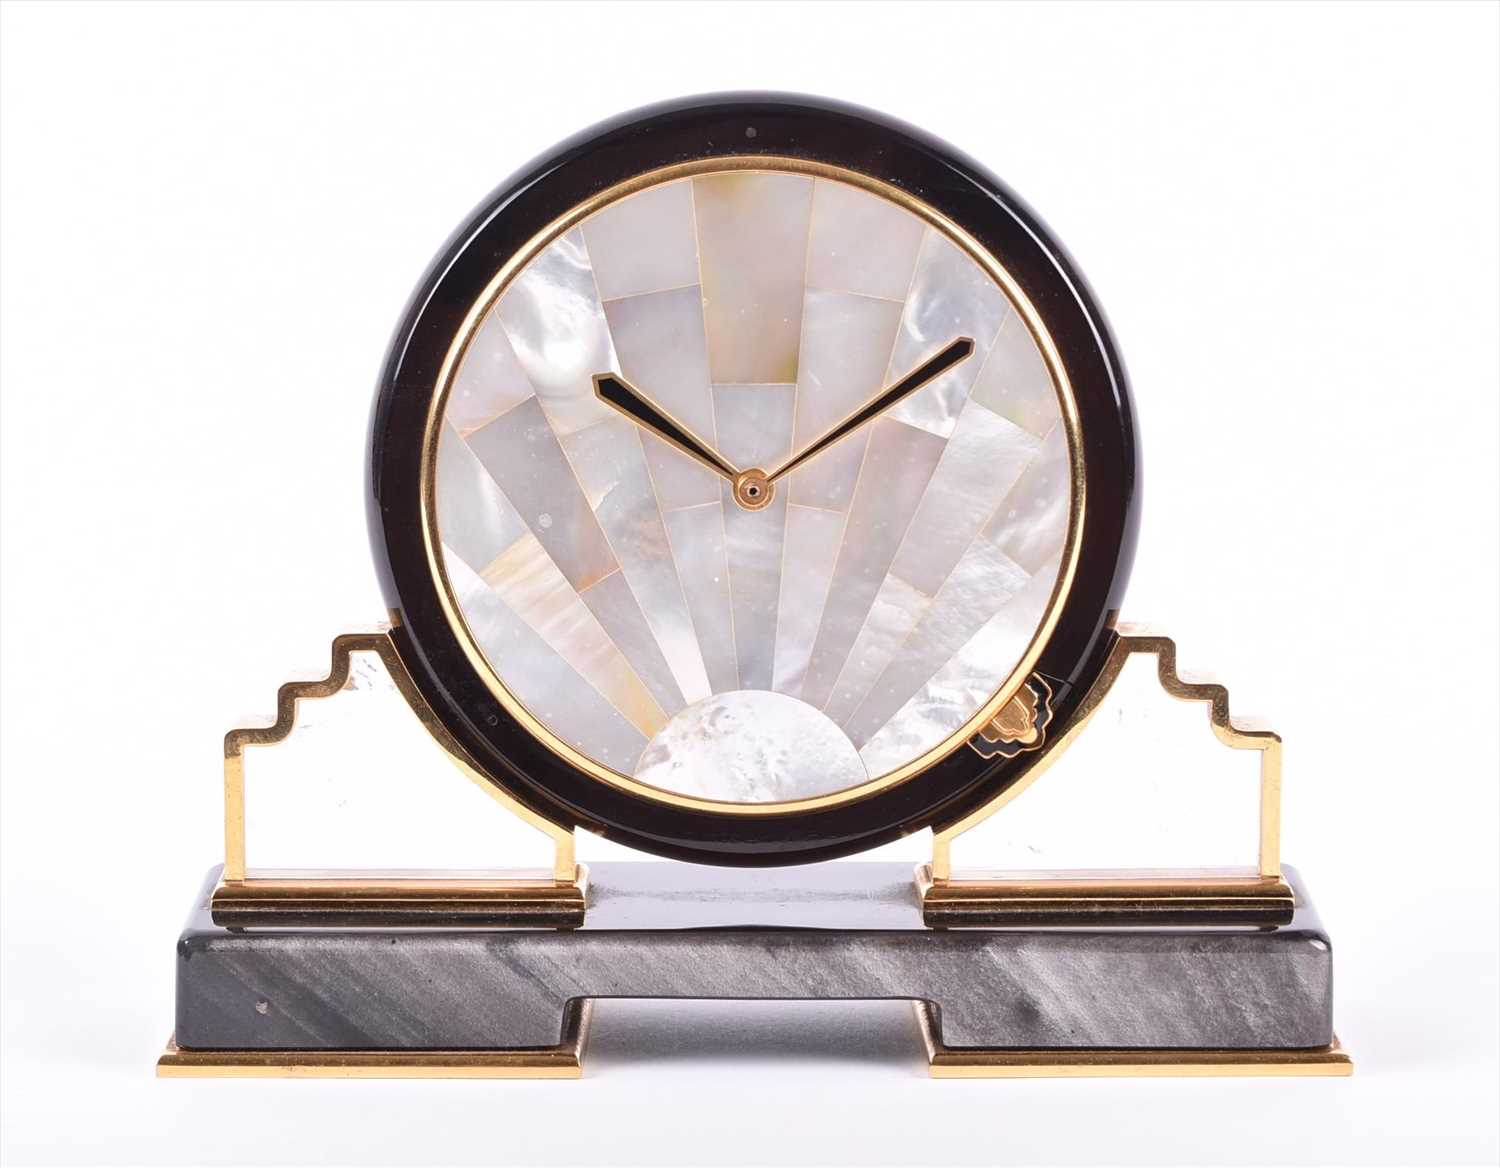 Lot 398-A Cartier Art Deco mother-of-pearl mantel clock...